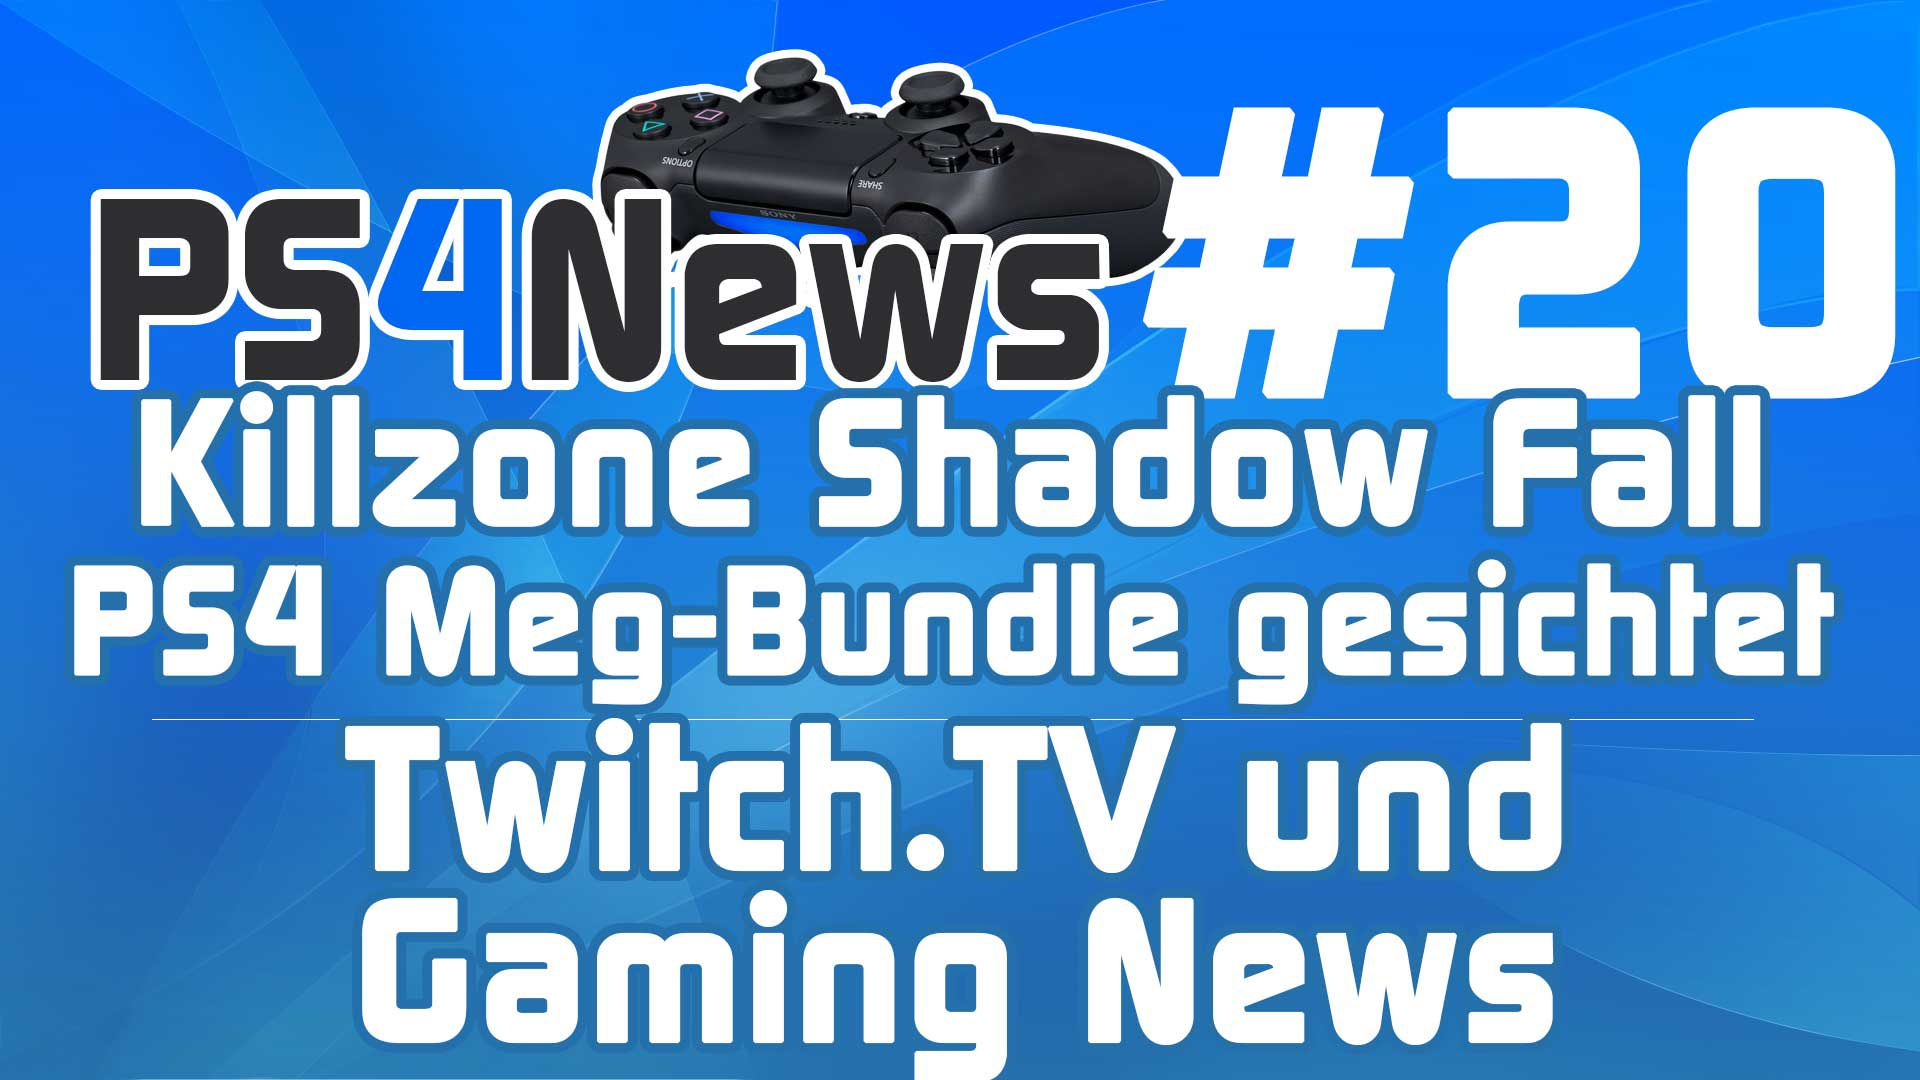 Killzone Shadow Fall PS4 Meg-Bundle gesichtet, Twitch.TV und PS4 Gaming News